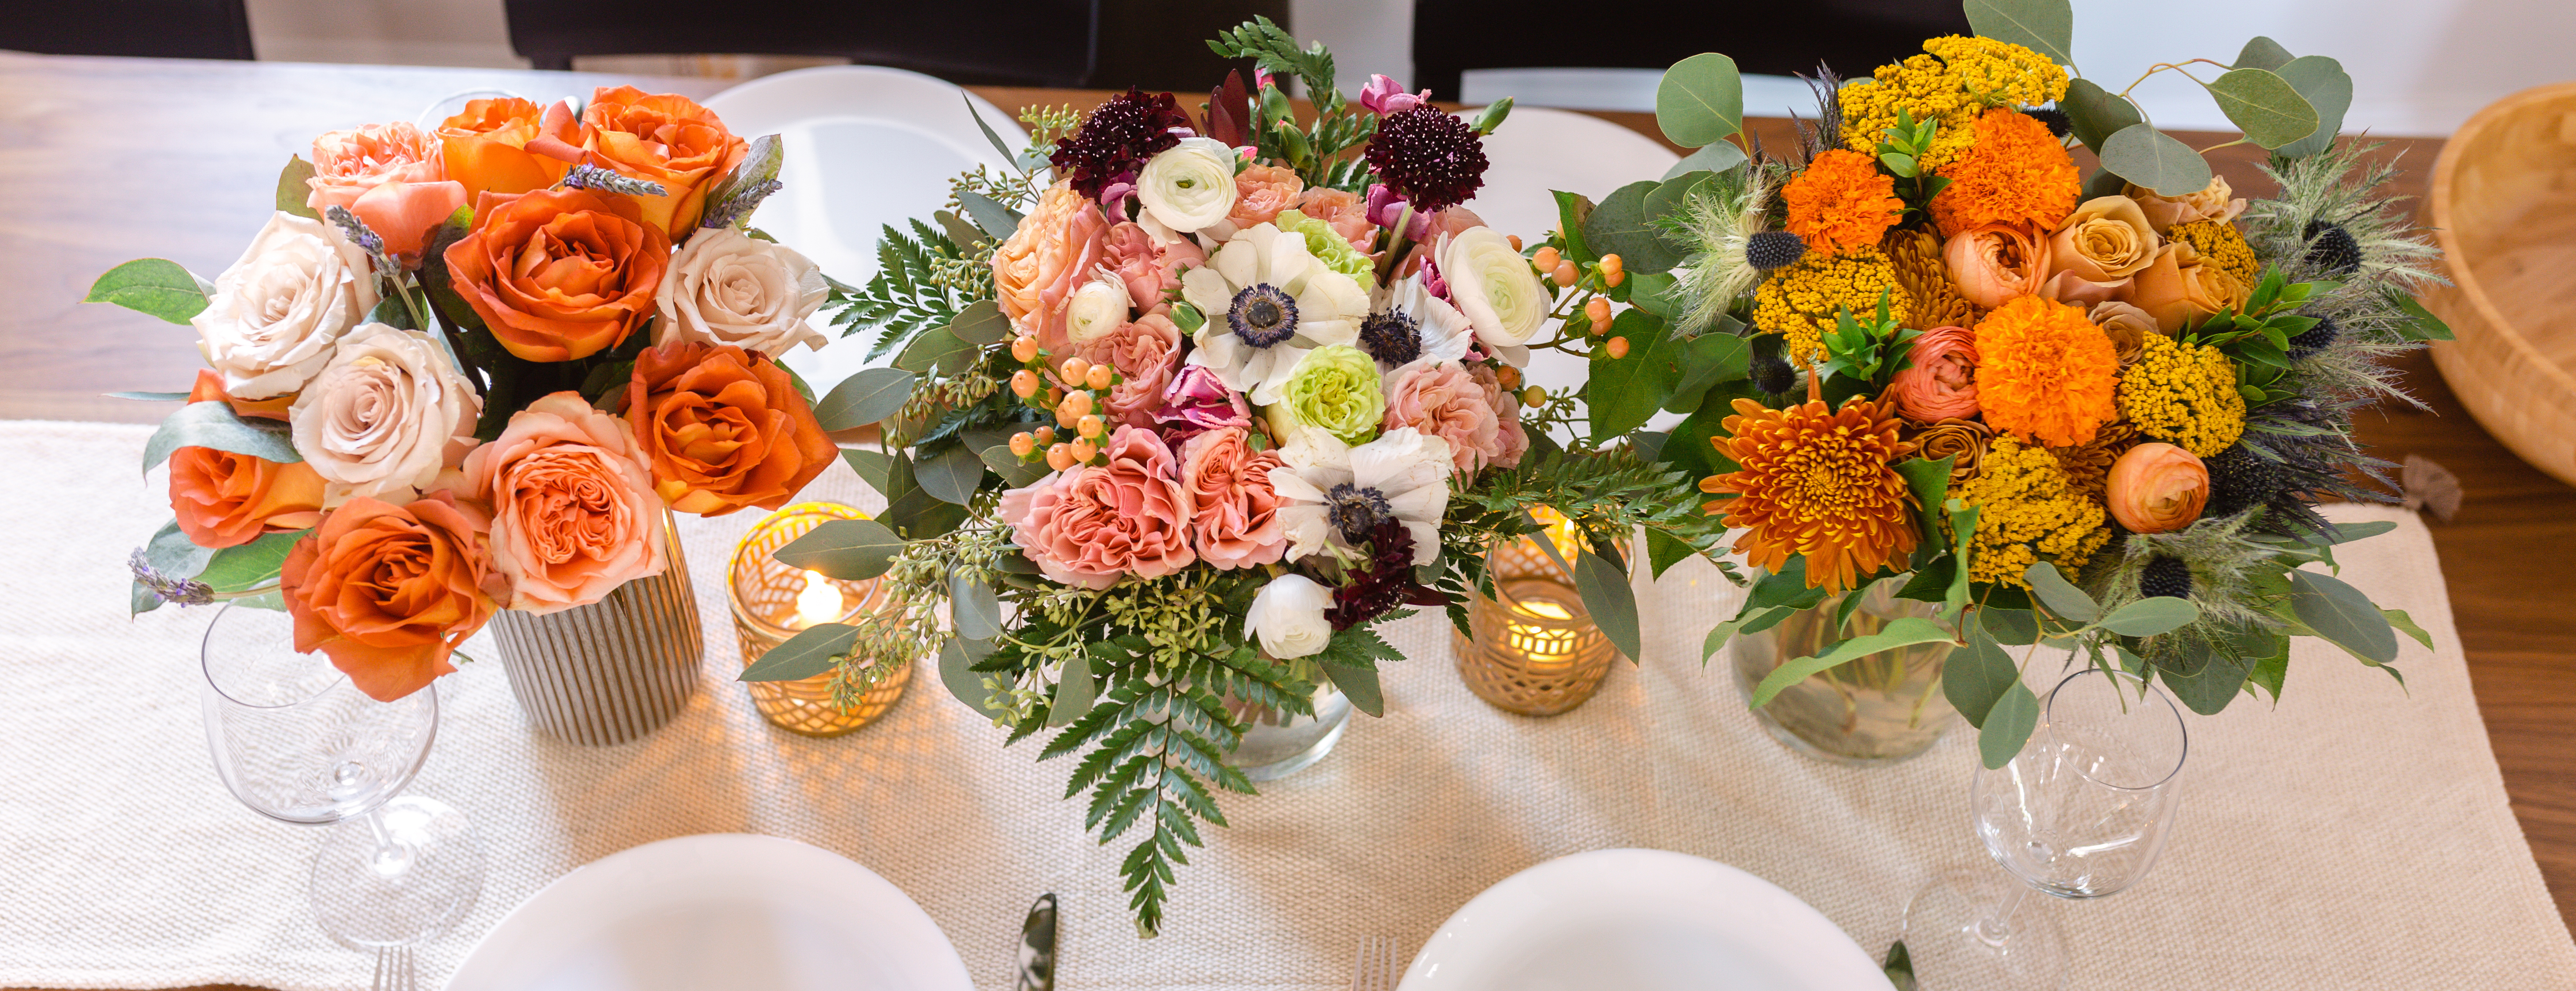 Tablescape with three summer bouquets.